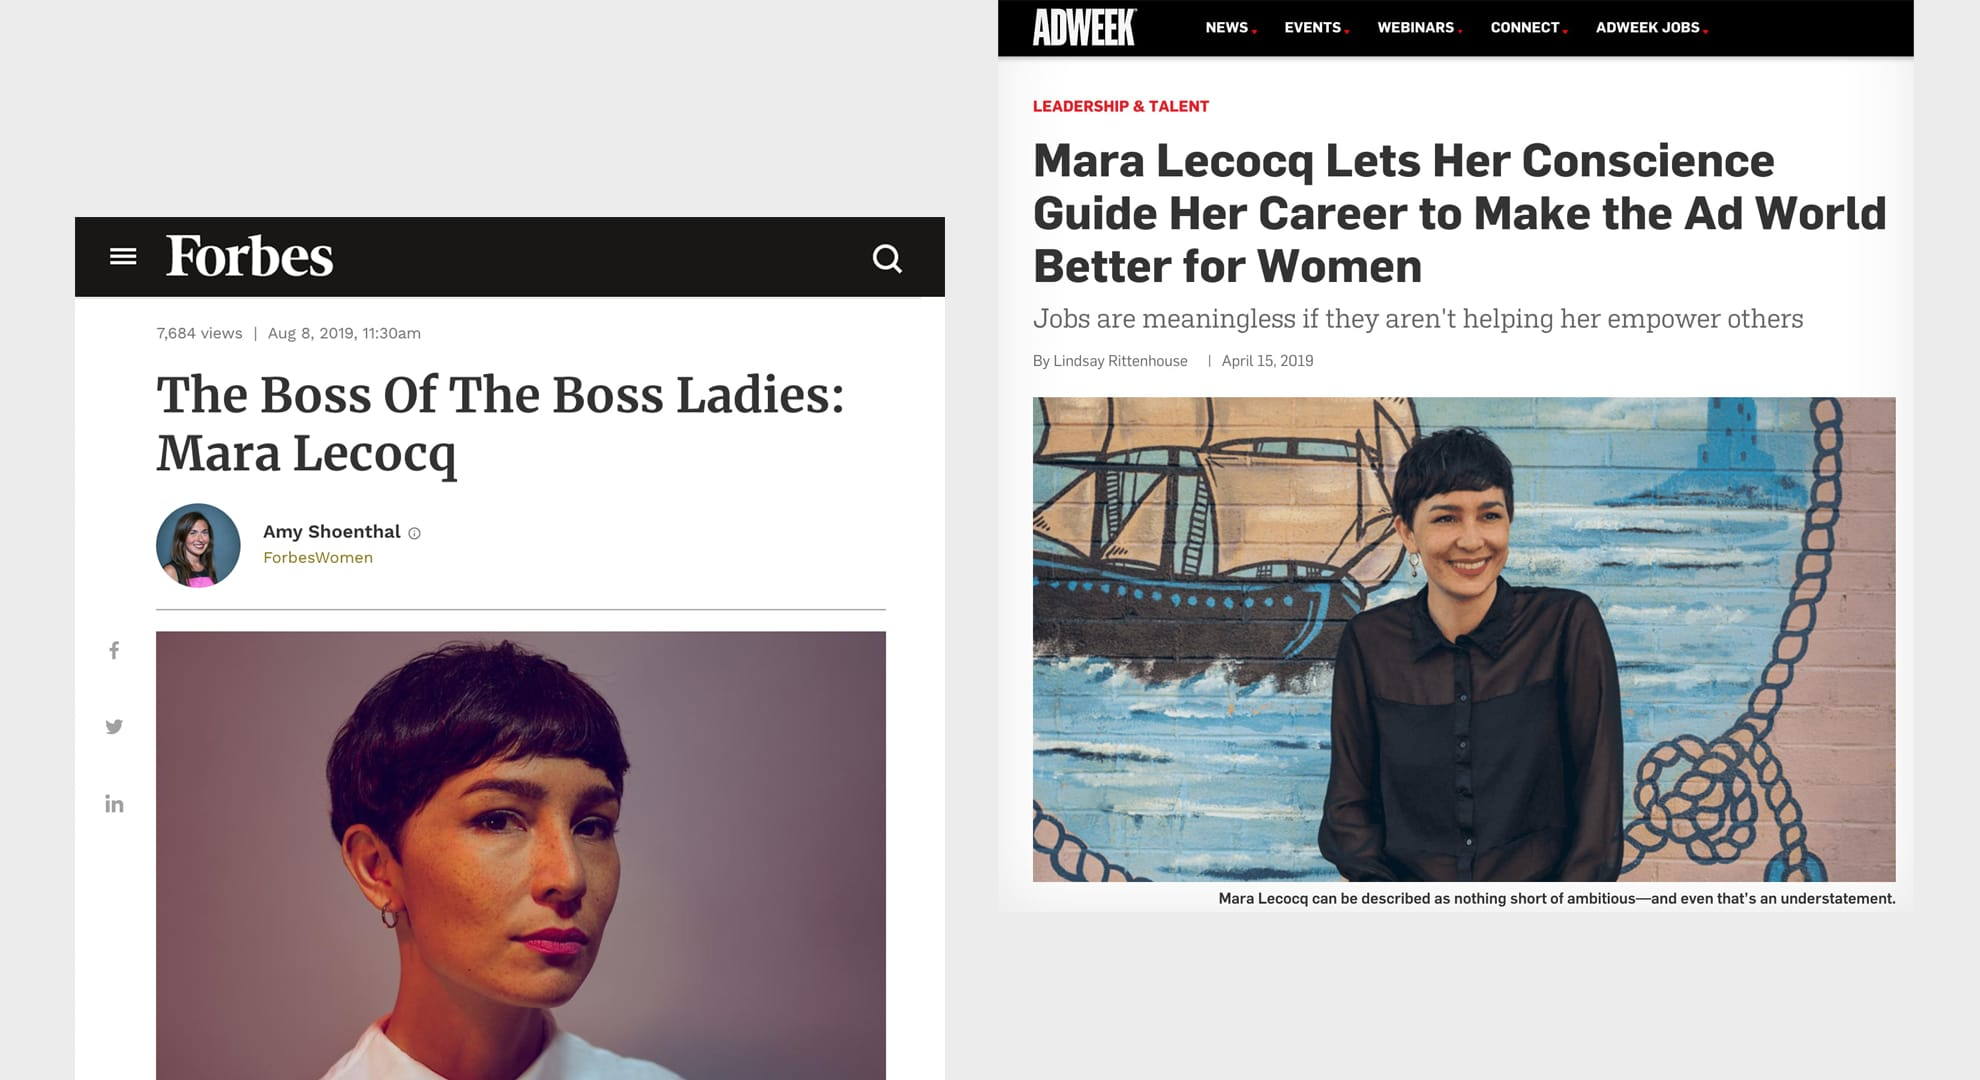 forbes-boss-ladies-mara-lecocq-boss-lady-adweek-purpose 2.jpg